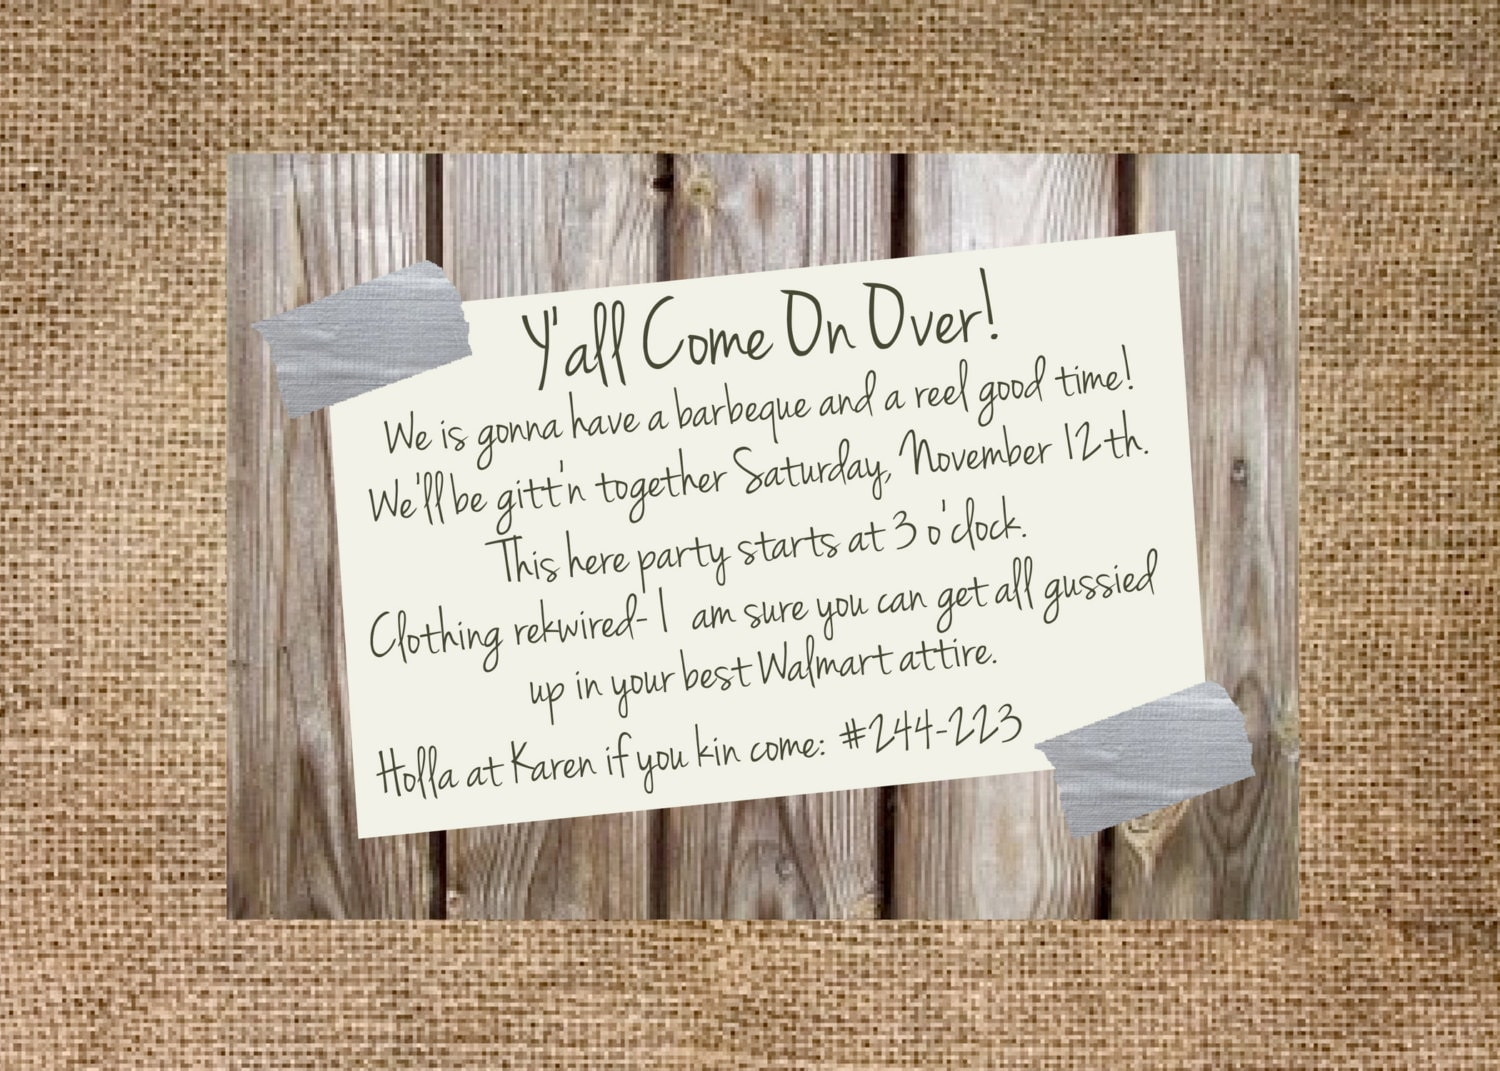 Redneck Christmas Party Ideas Part - 37: Christmas Scavenger Hunt Photo Ideas - Redneck Party Invitation  Personalized And Printable 5x7